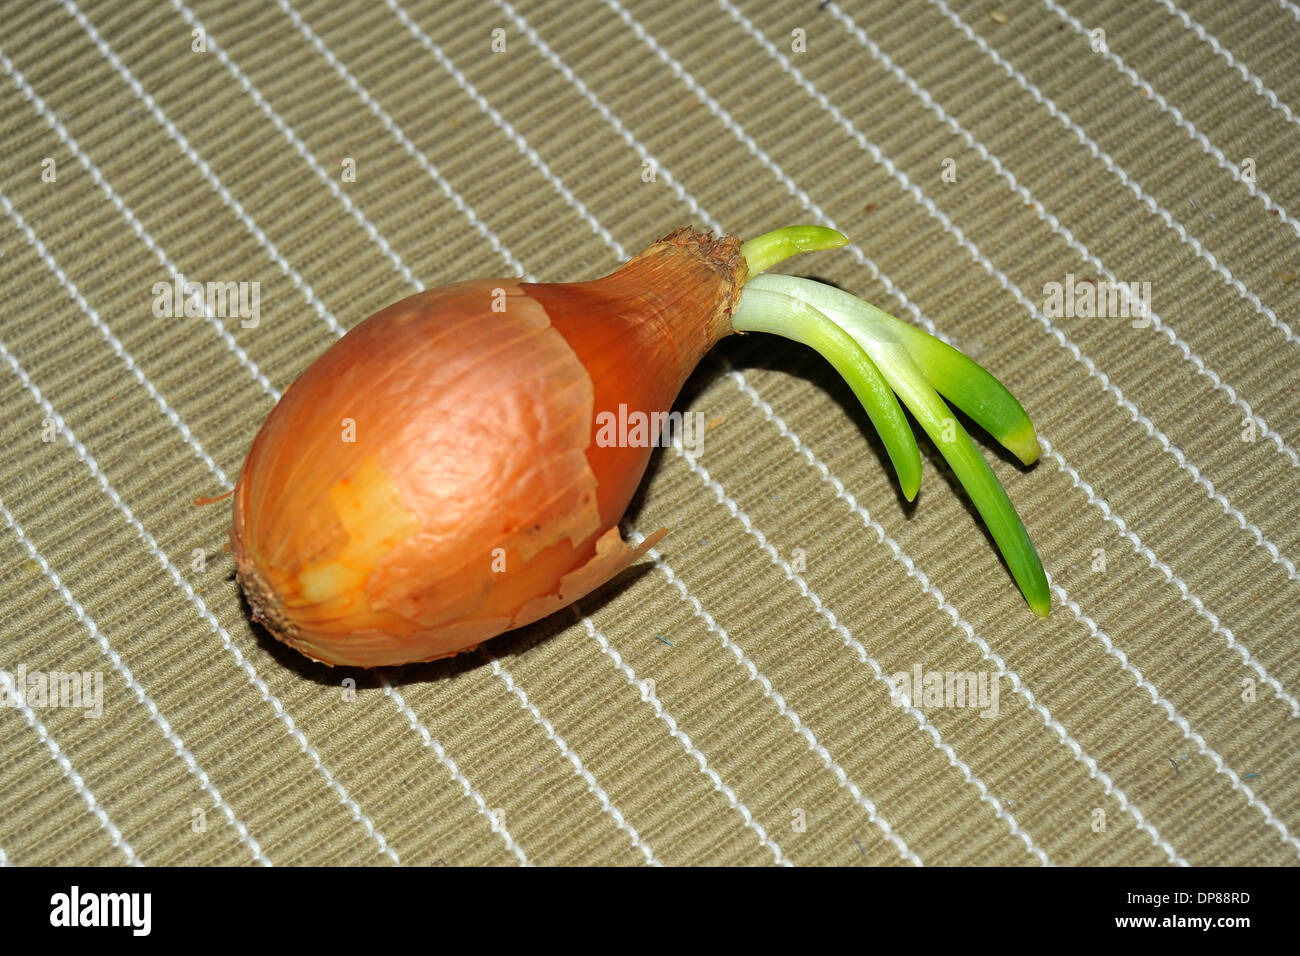 An onion with stems growing out of it. - Stock Image